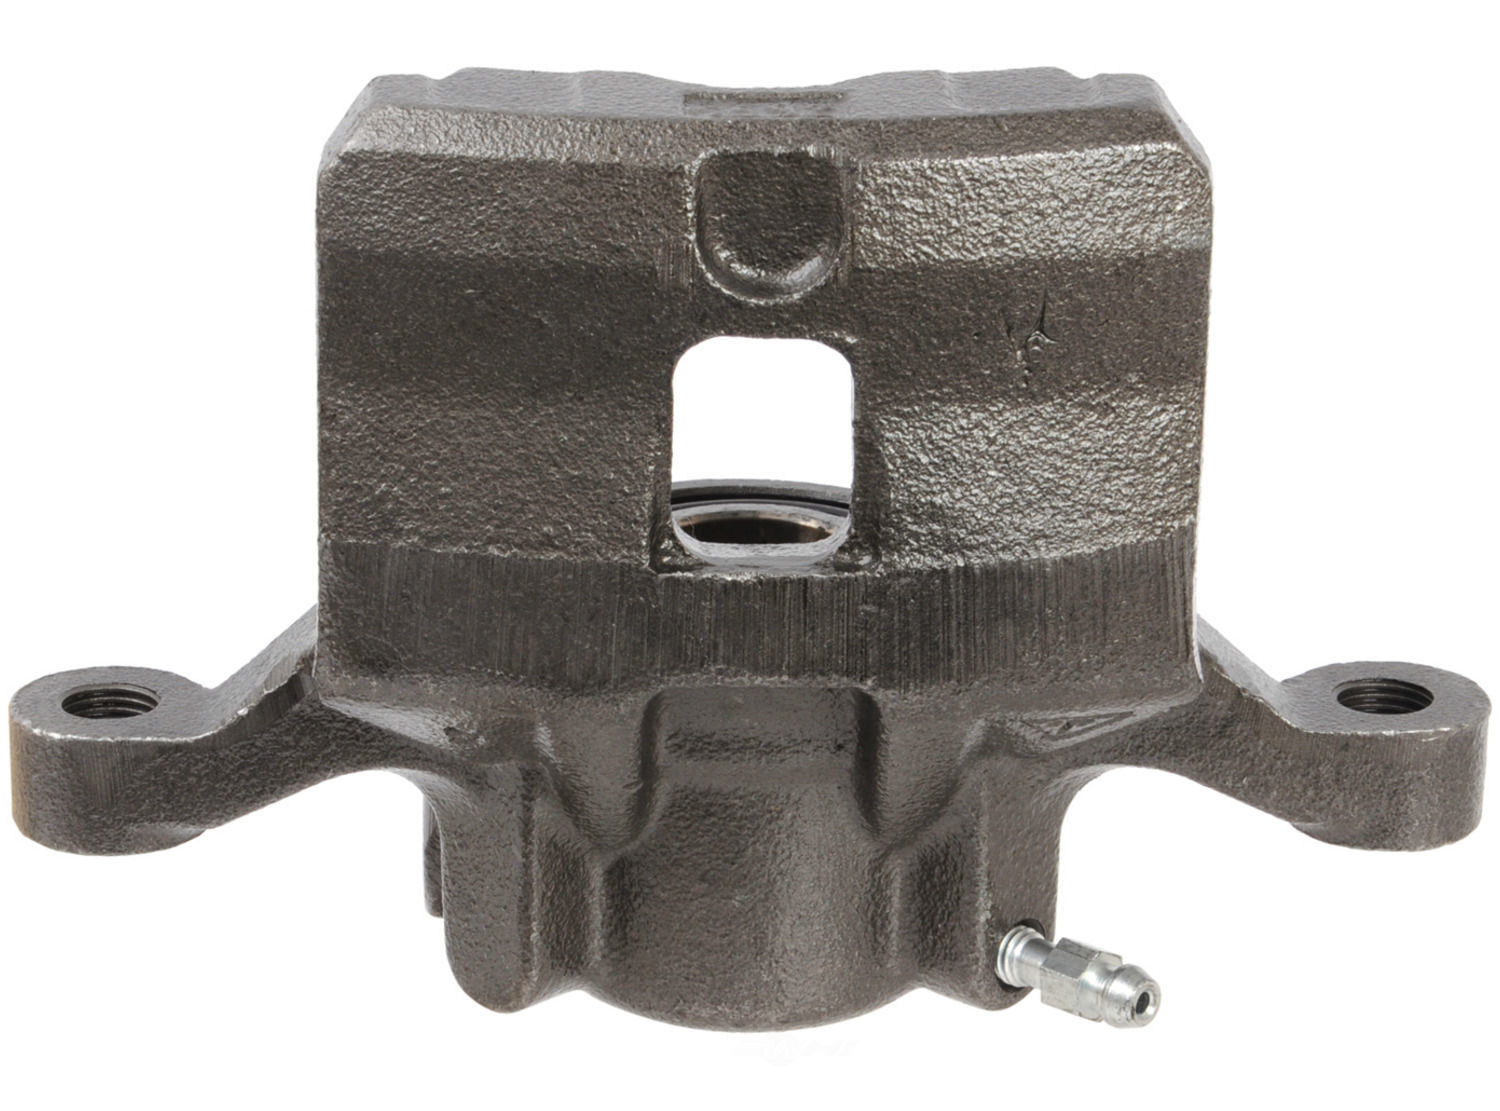 CARDONE/A-1 CARDONE - Reman. A-1 CARDONE Friction Choice Caliper (Rear Left) - A1C 19-2967